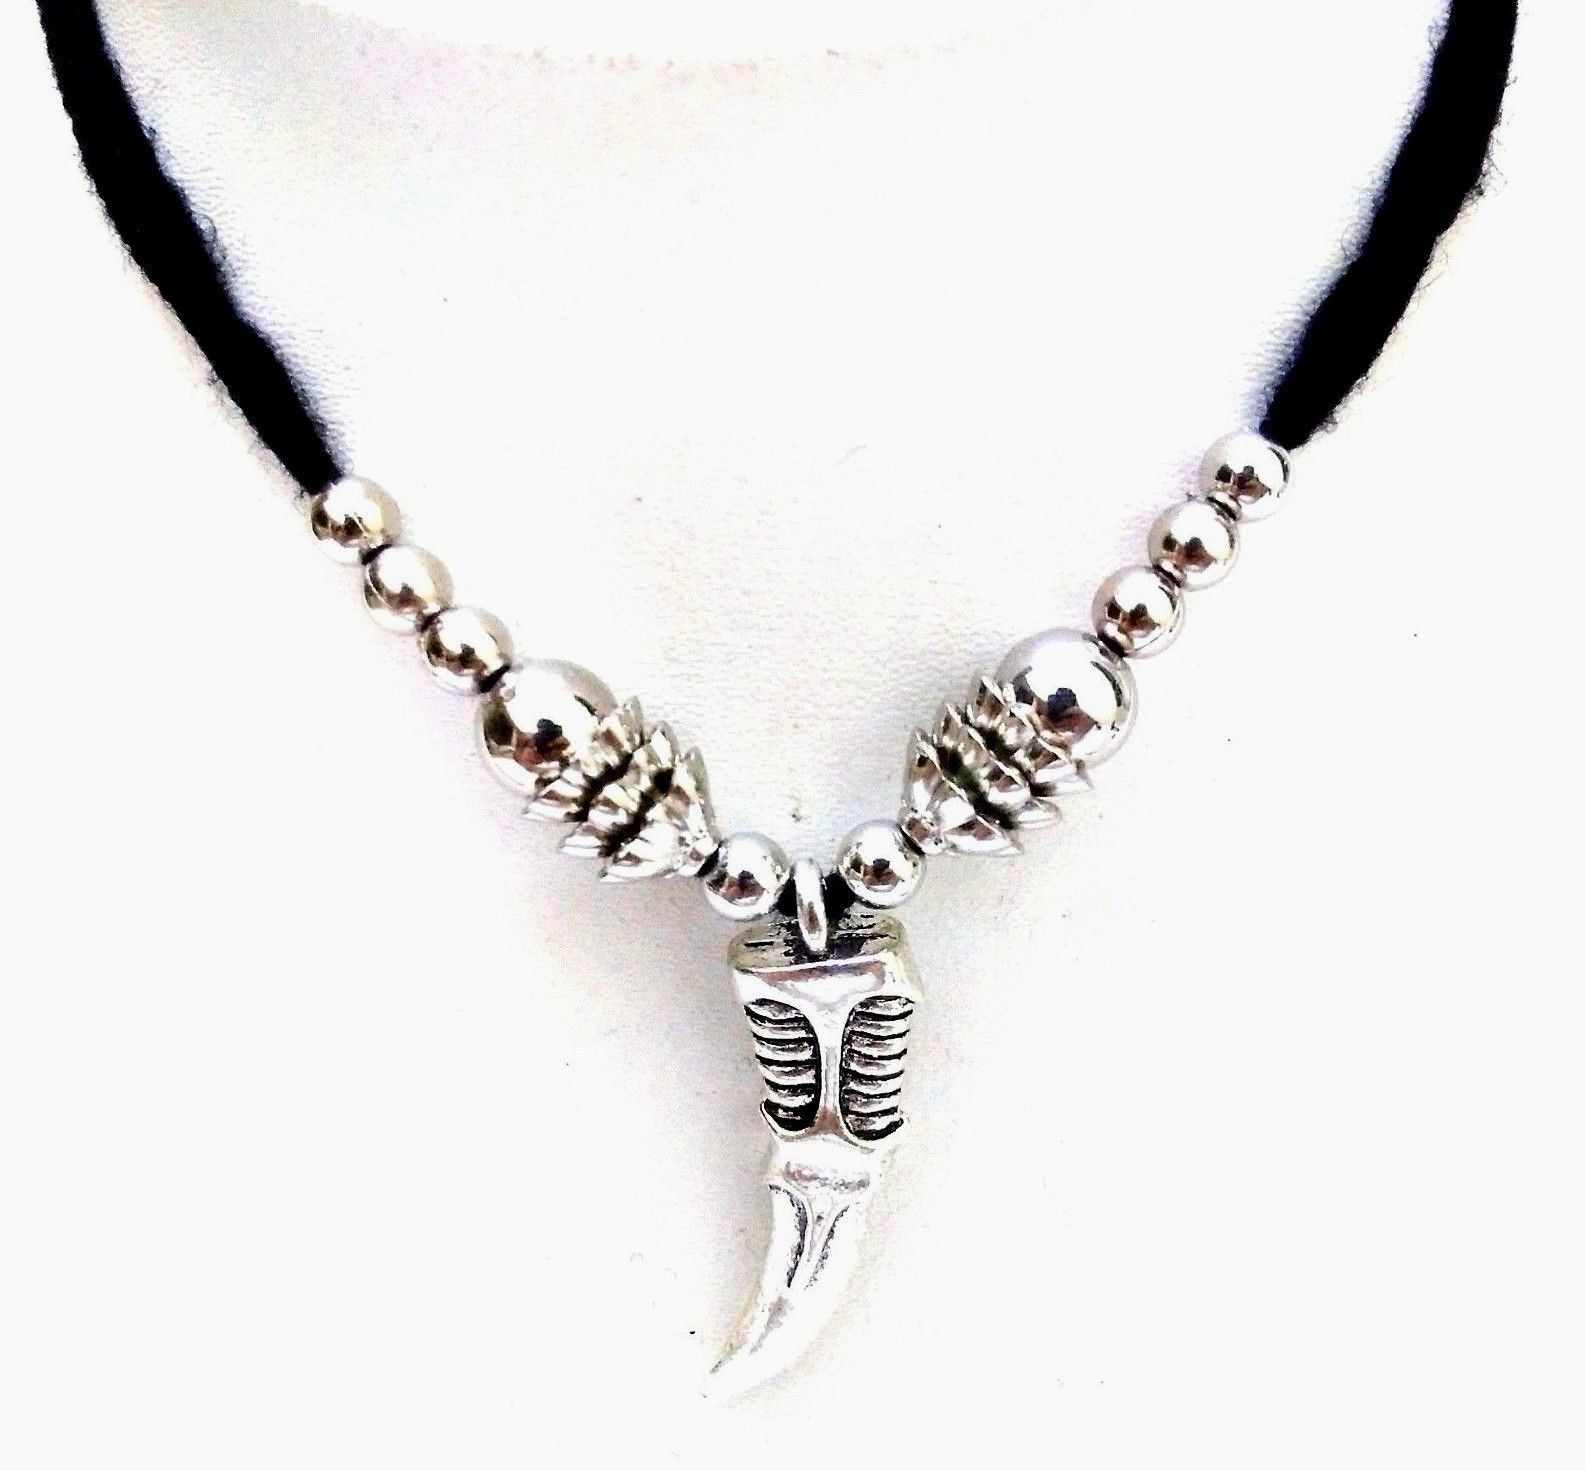 KNIFE Silver Oxidized Necklace Pendant Choker Collar Long String Jewelry 8-98